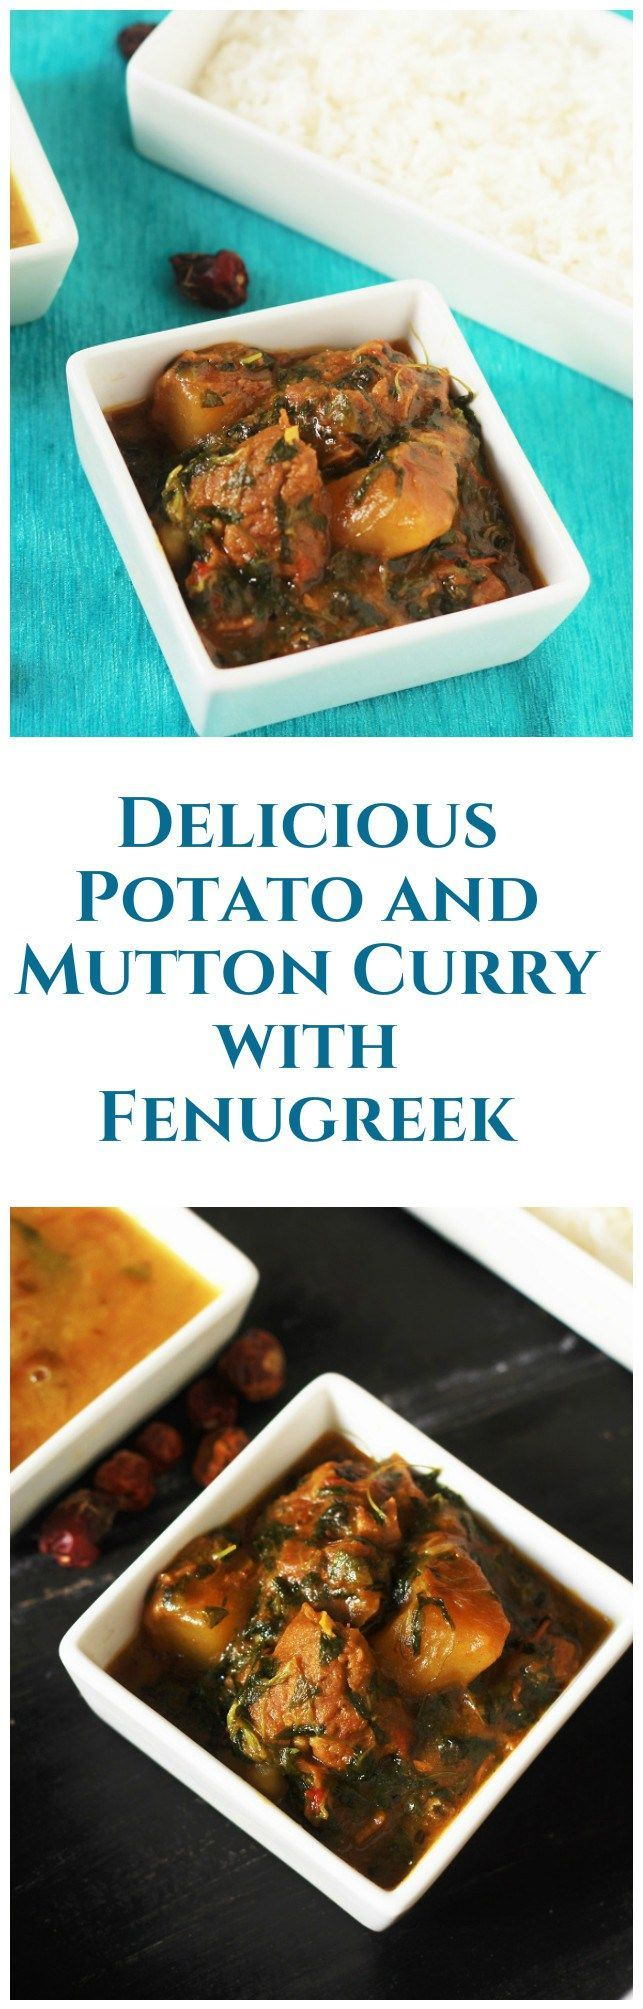 100+ best Mutton images on Pinterest | Indian food recipes, Indian ...